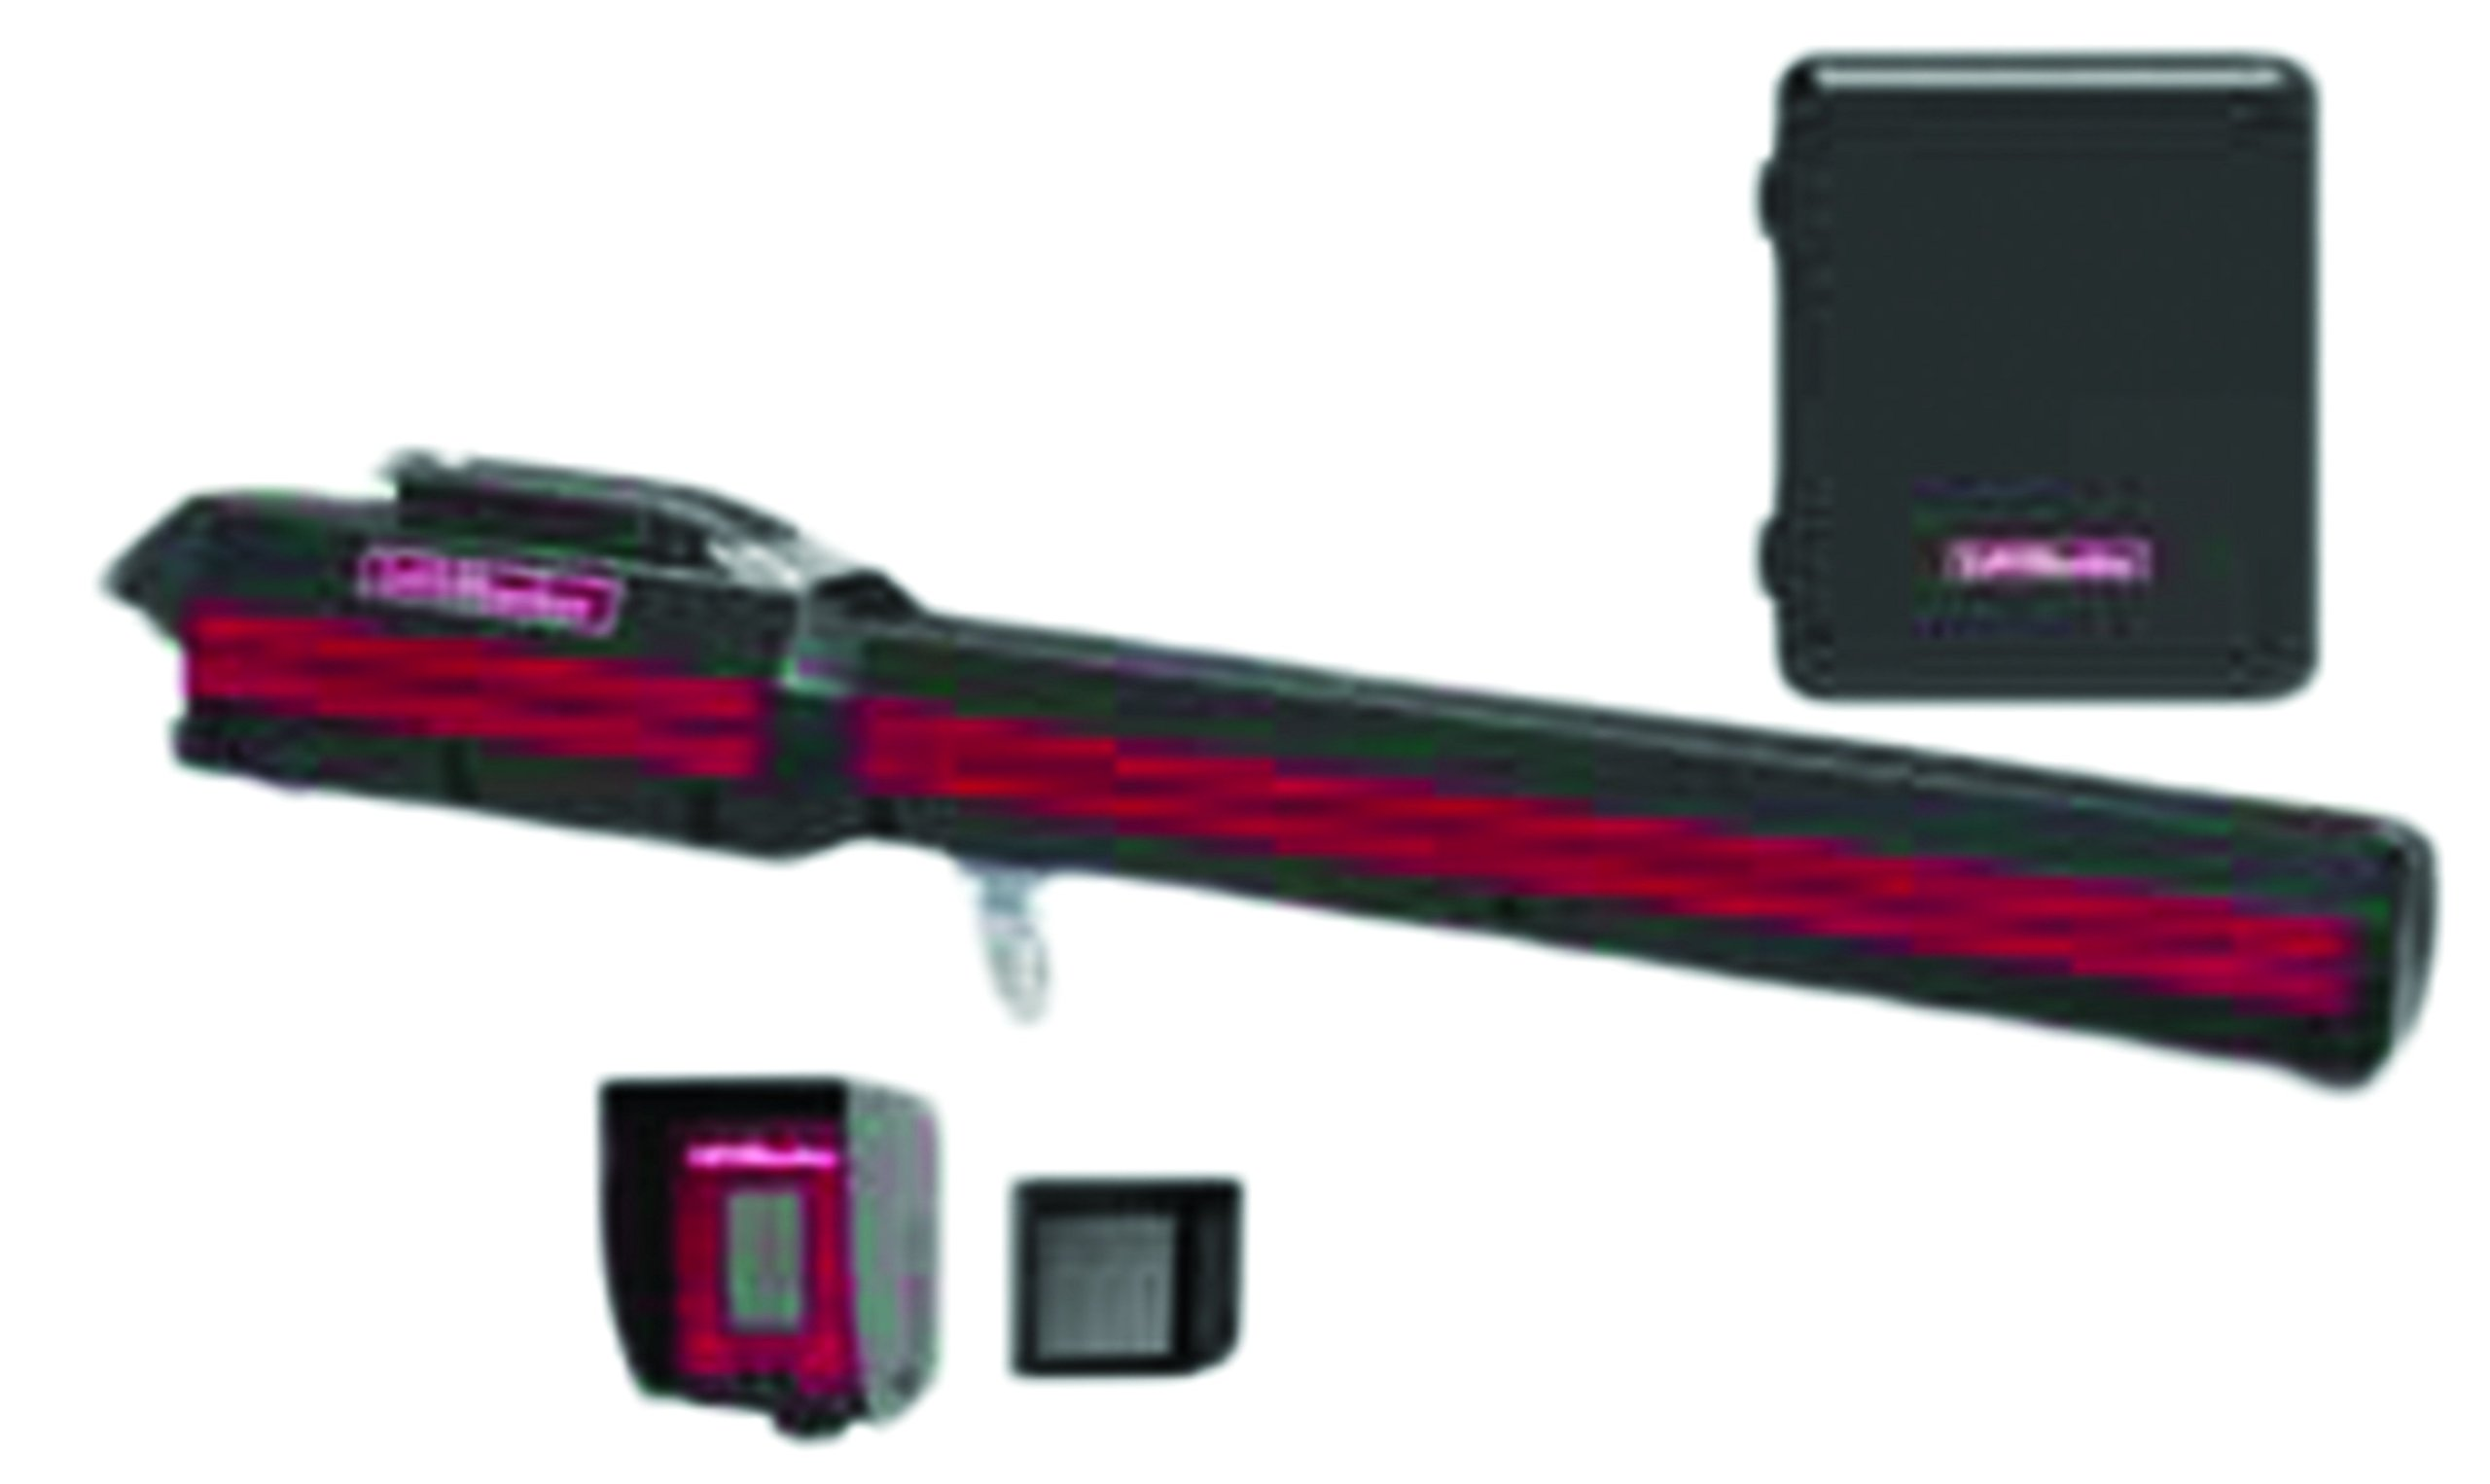 Liftmaster LA500PKGU 24VDC Residential/Light Commercial Single Linear Actuator Kit, Battery Backup, Receiver & Photocell INCLUDED! by FAS